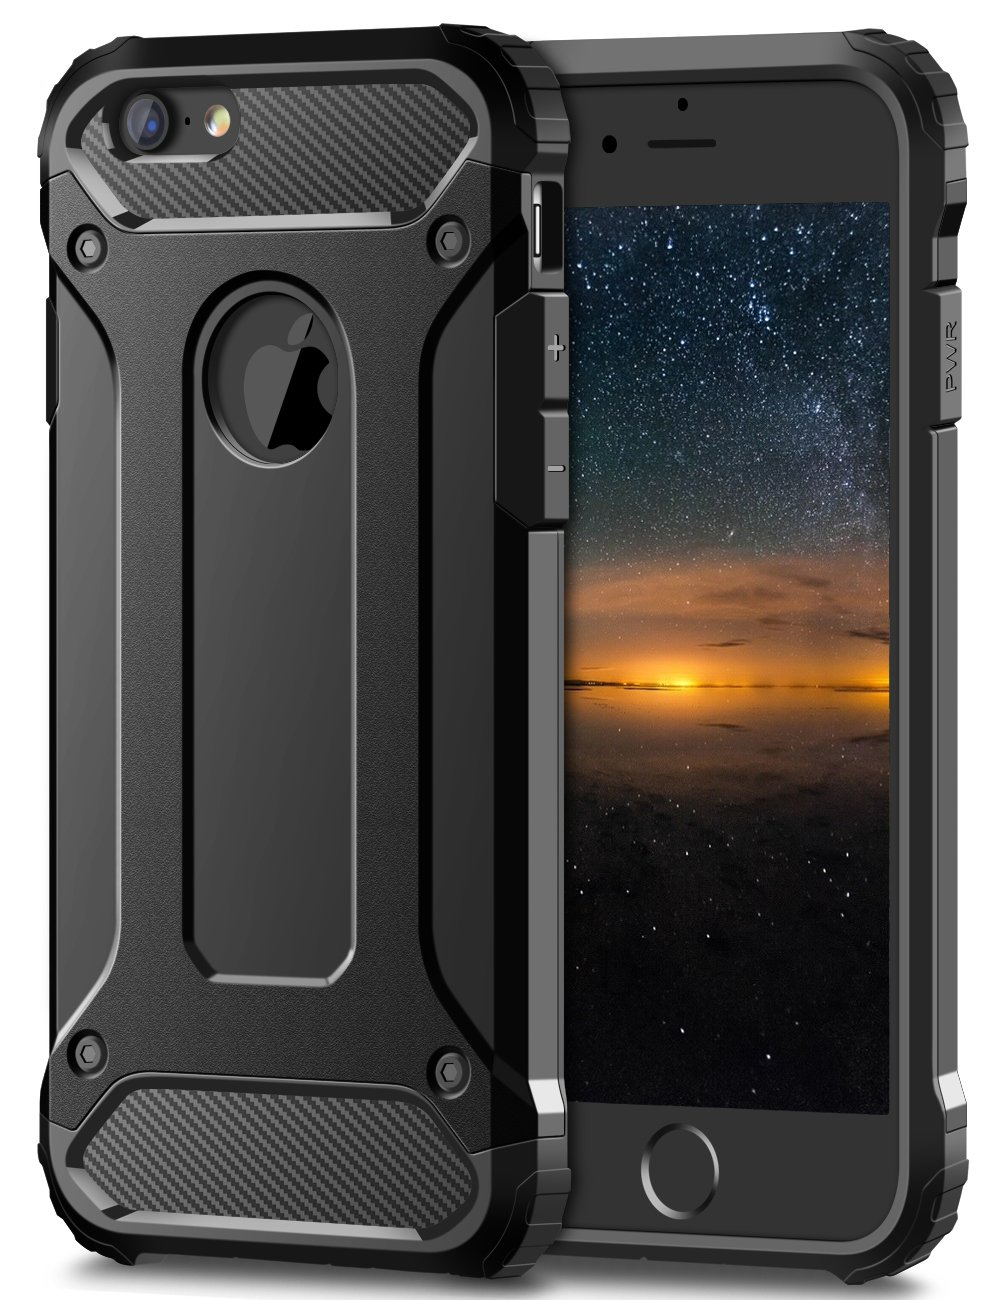 iphone 7 heavy duty case amazon co ukcoolden iphone 7 case, rugged tough dual layer armor case iphone 7 protective case shockproof